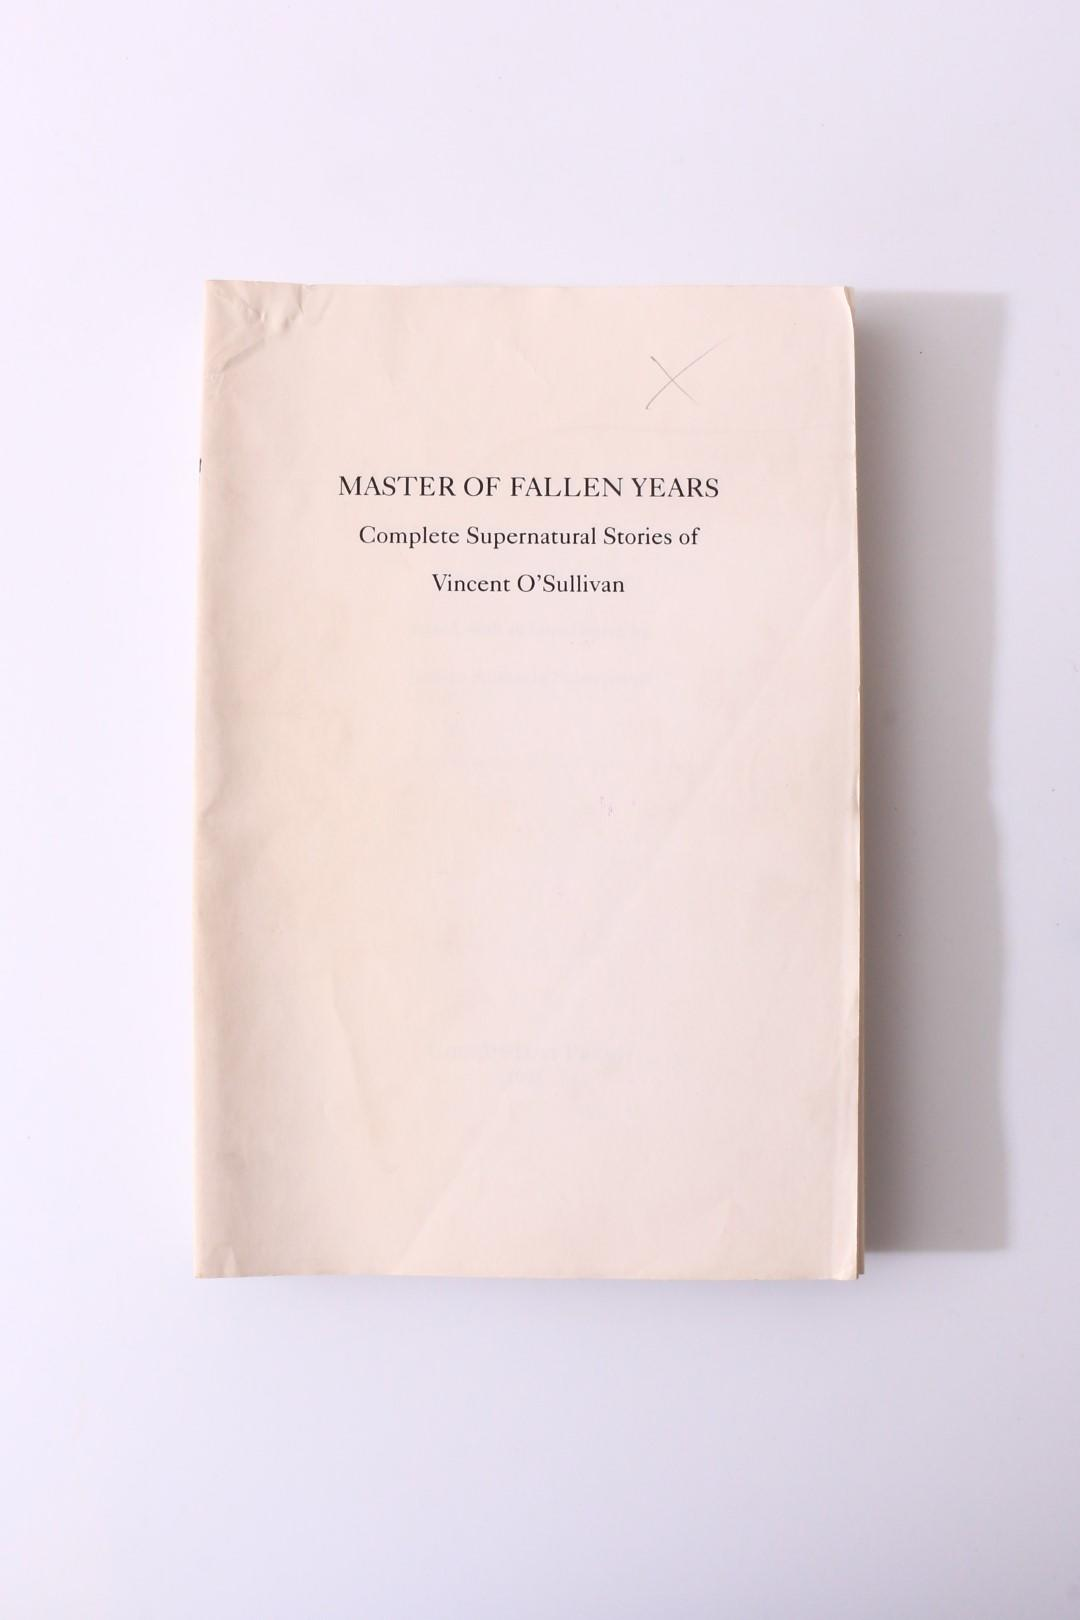 Vincent O'Sullivan - Master of Fallen Years: Complete Supernatural Stories of Vincent O'Sullivan - Ghost Story Press, 1995, Proof.